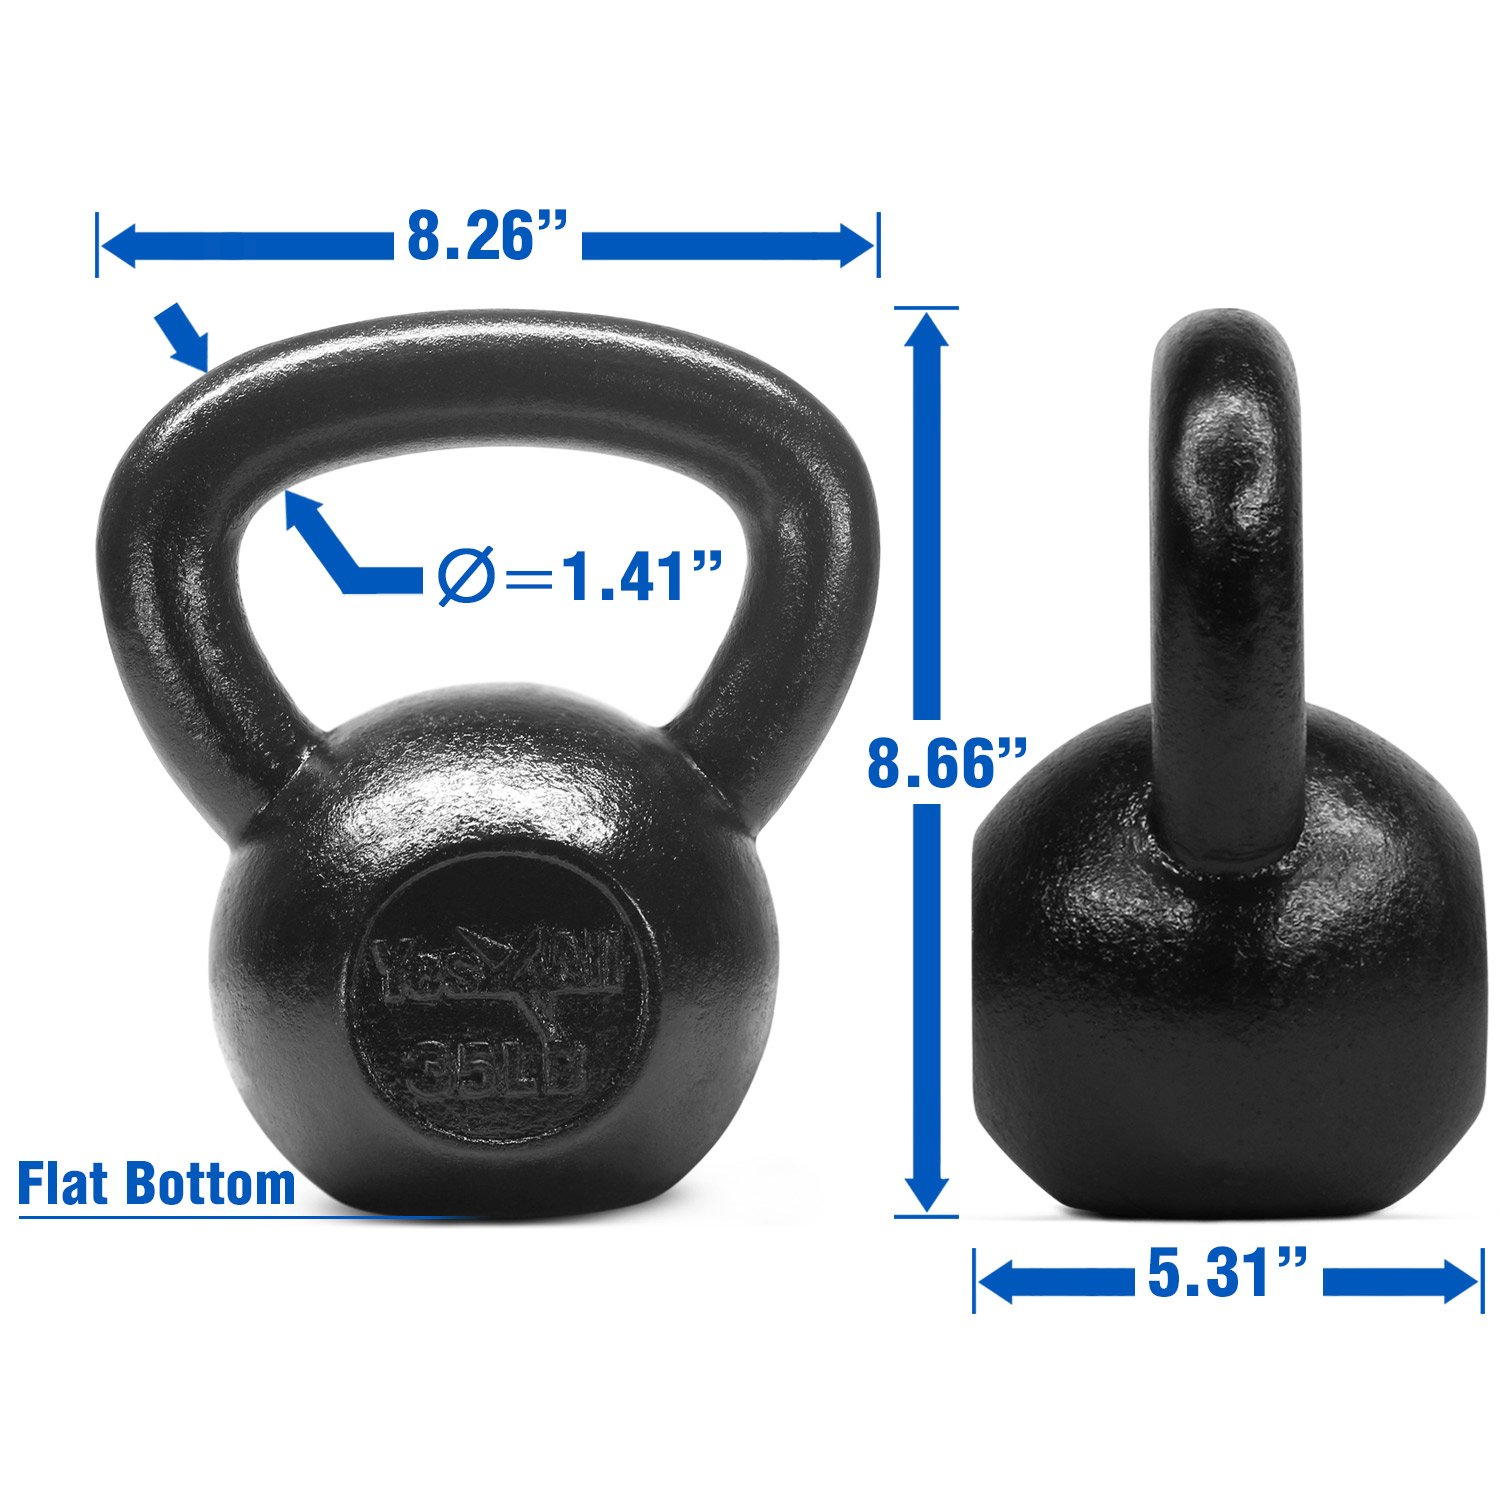 Yes4All Solid Cast Iron Kettlebell Weights Set - Great for Full Body Workout and Strength Training - Kettlebell 35 lbs (Black) by Yes4All (Image #3)